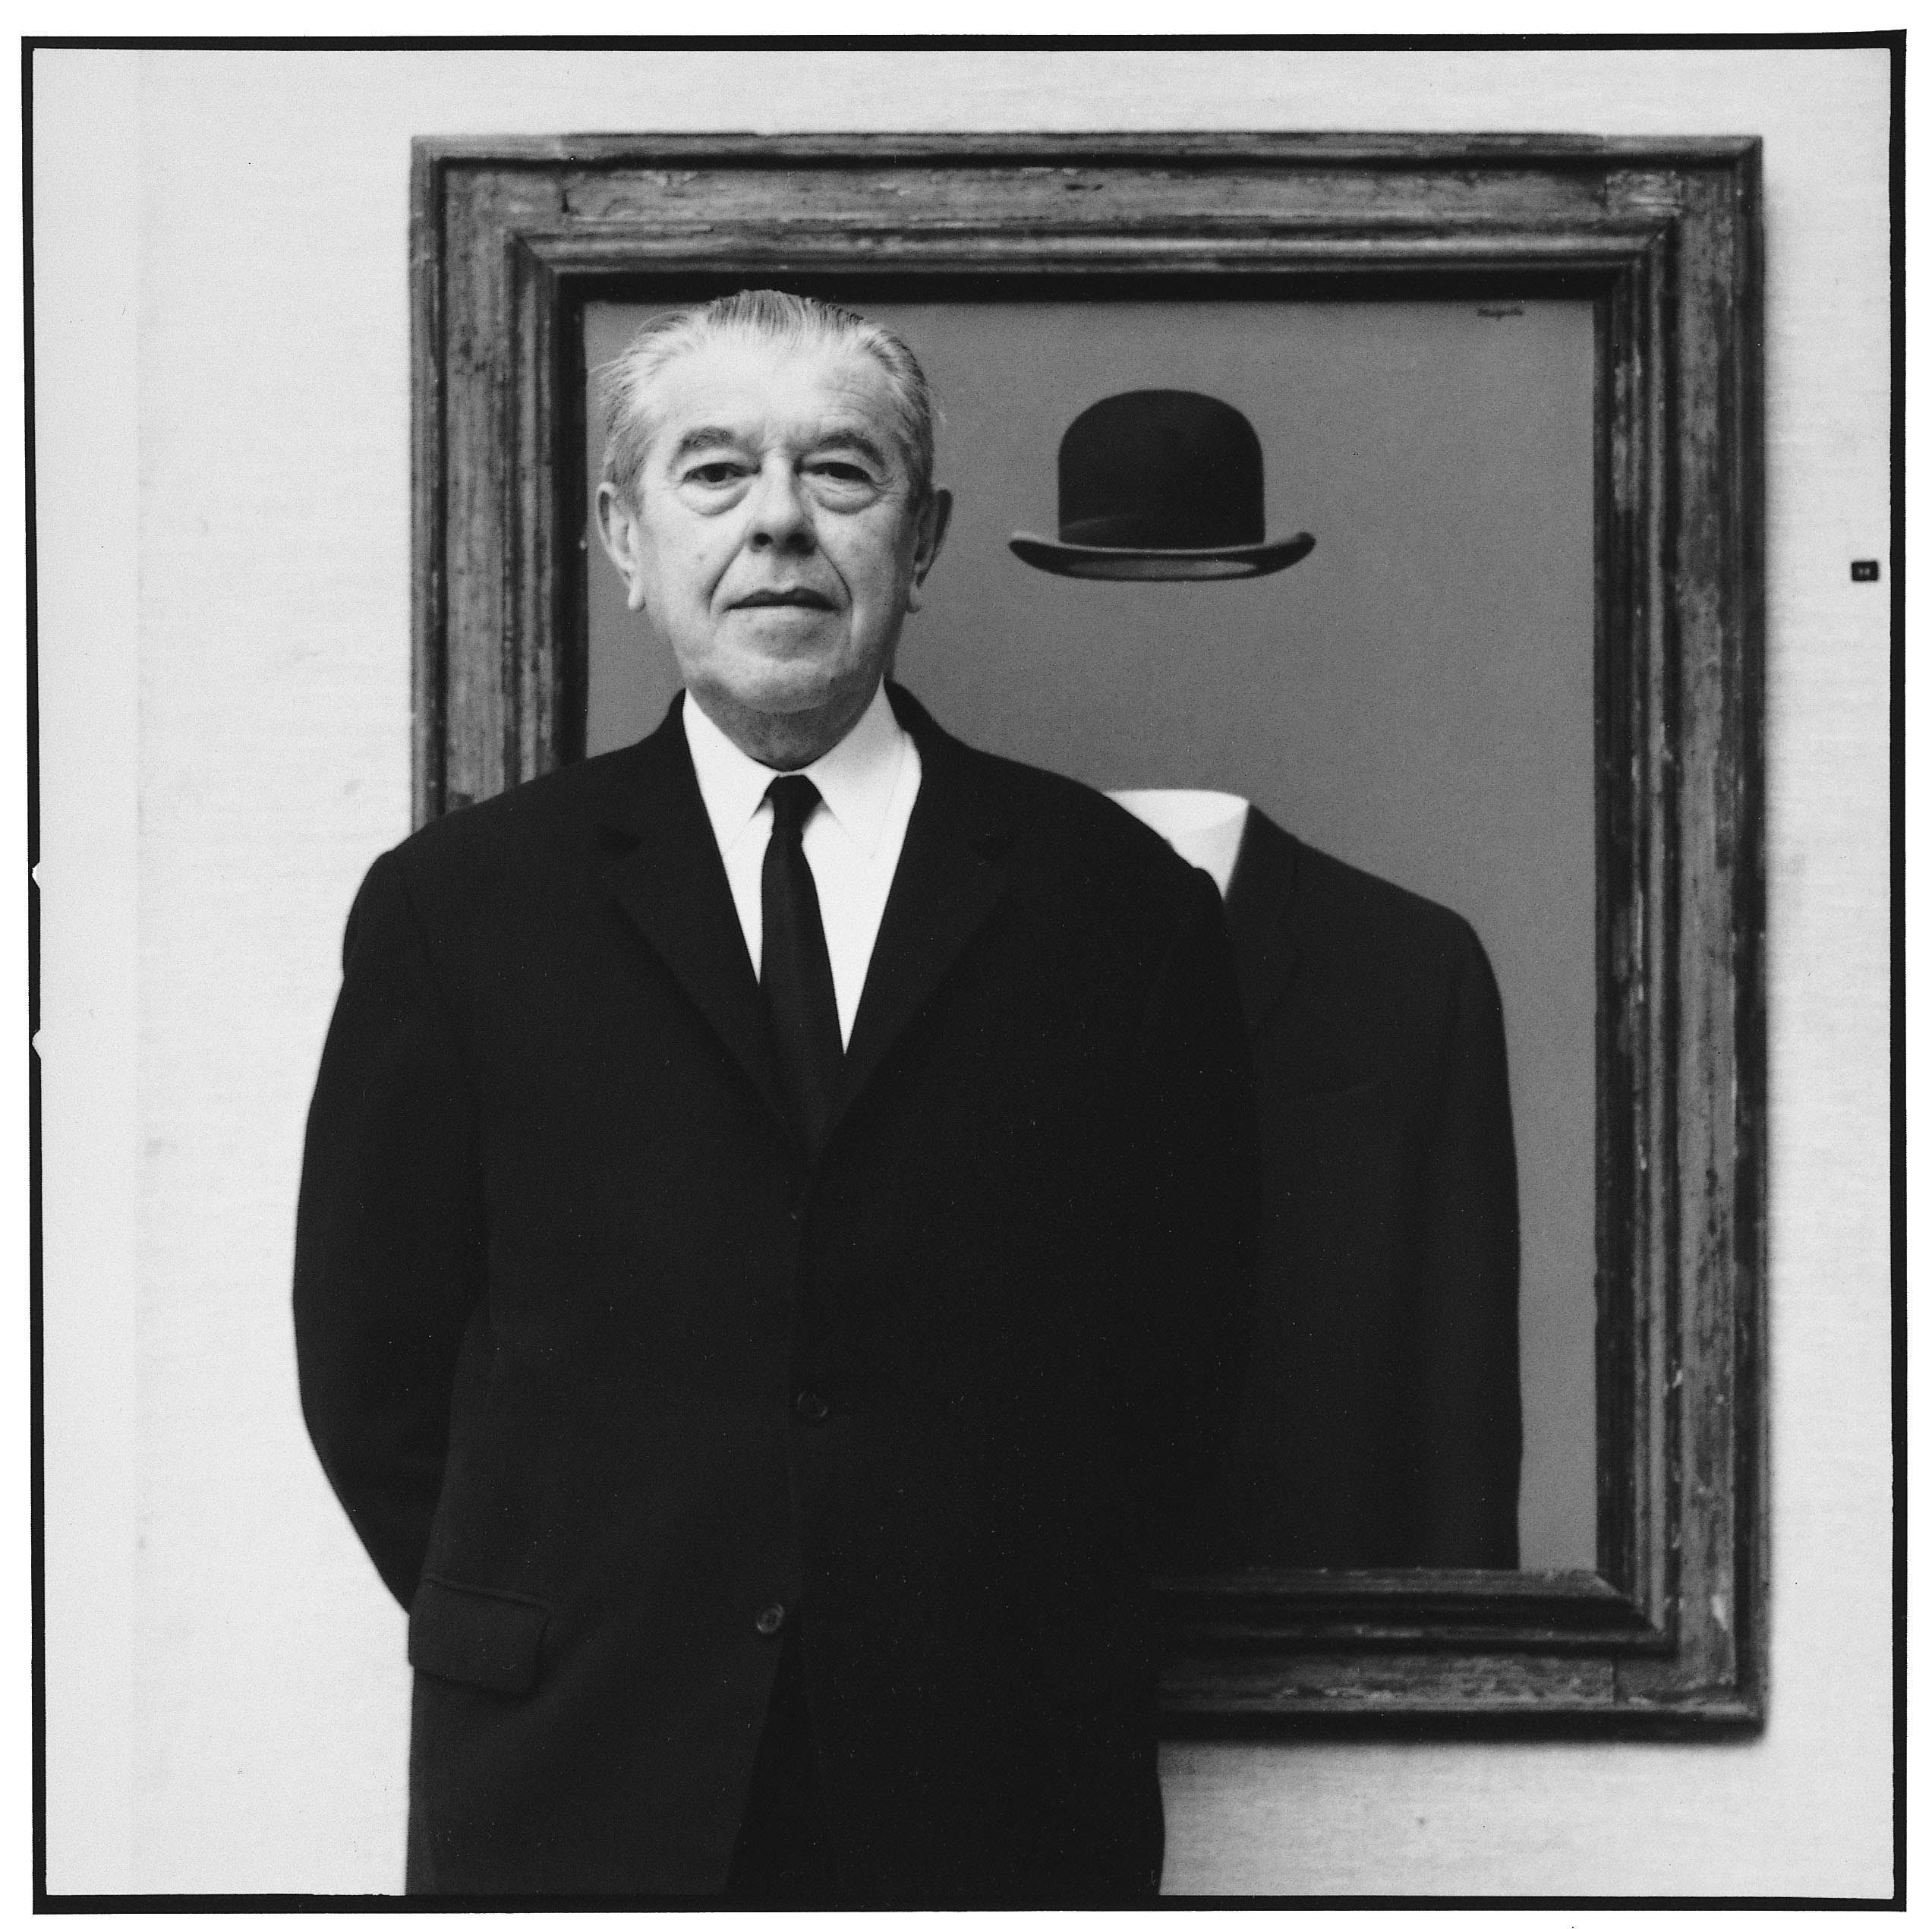 Rene Magritte by Lothar Wolleh